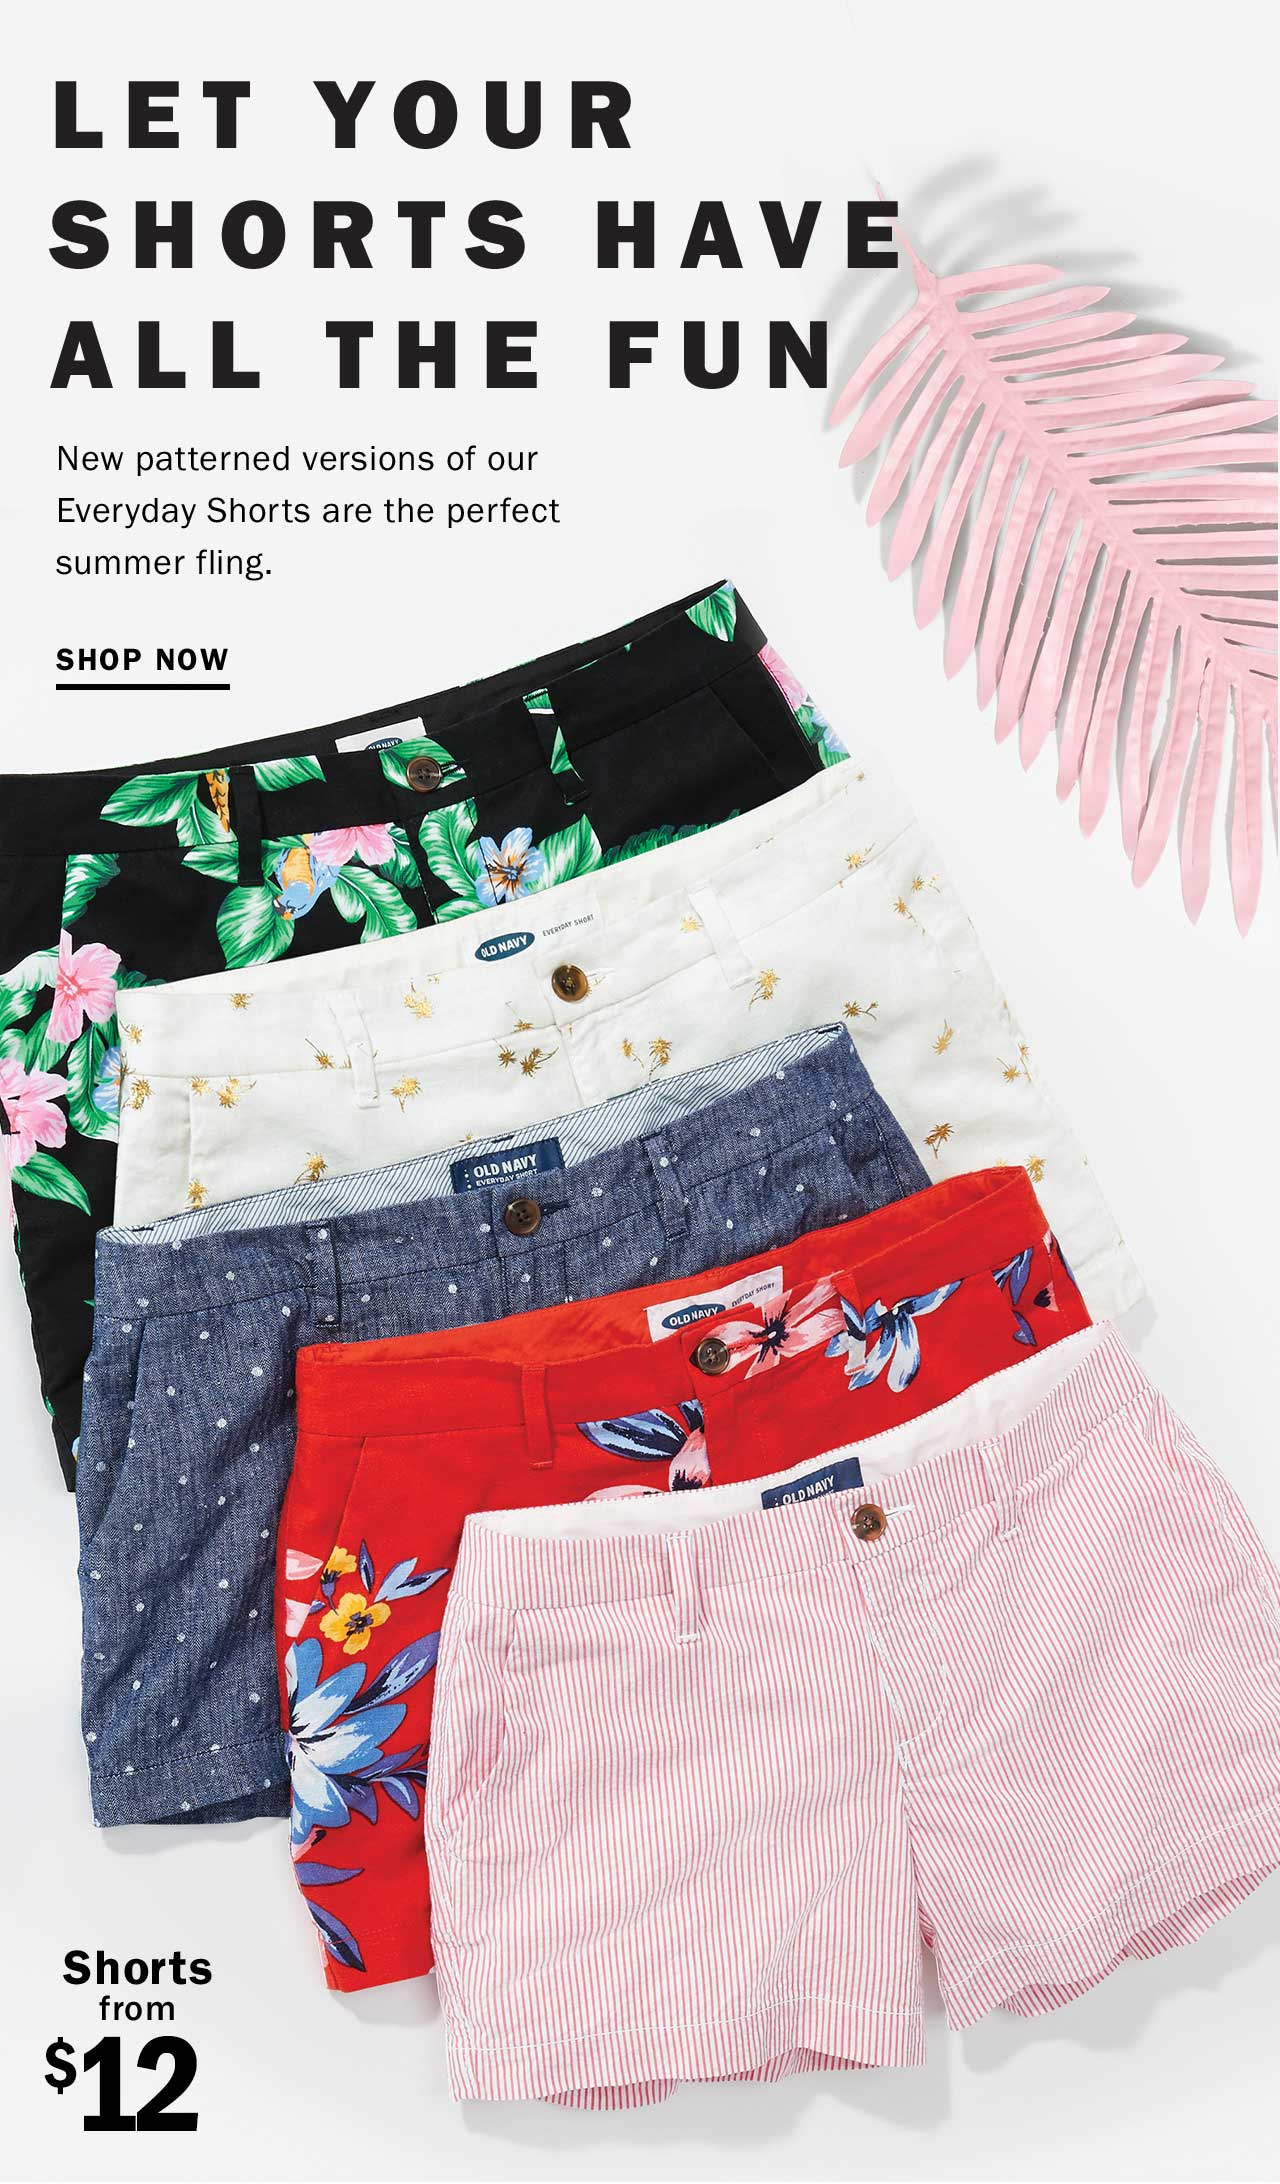 LET YOUR SHORTS HAVE ALL THE FUN | SHOP NOW | Shorts from $12